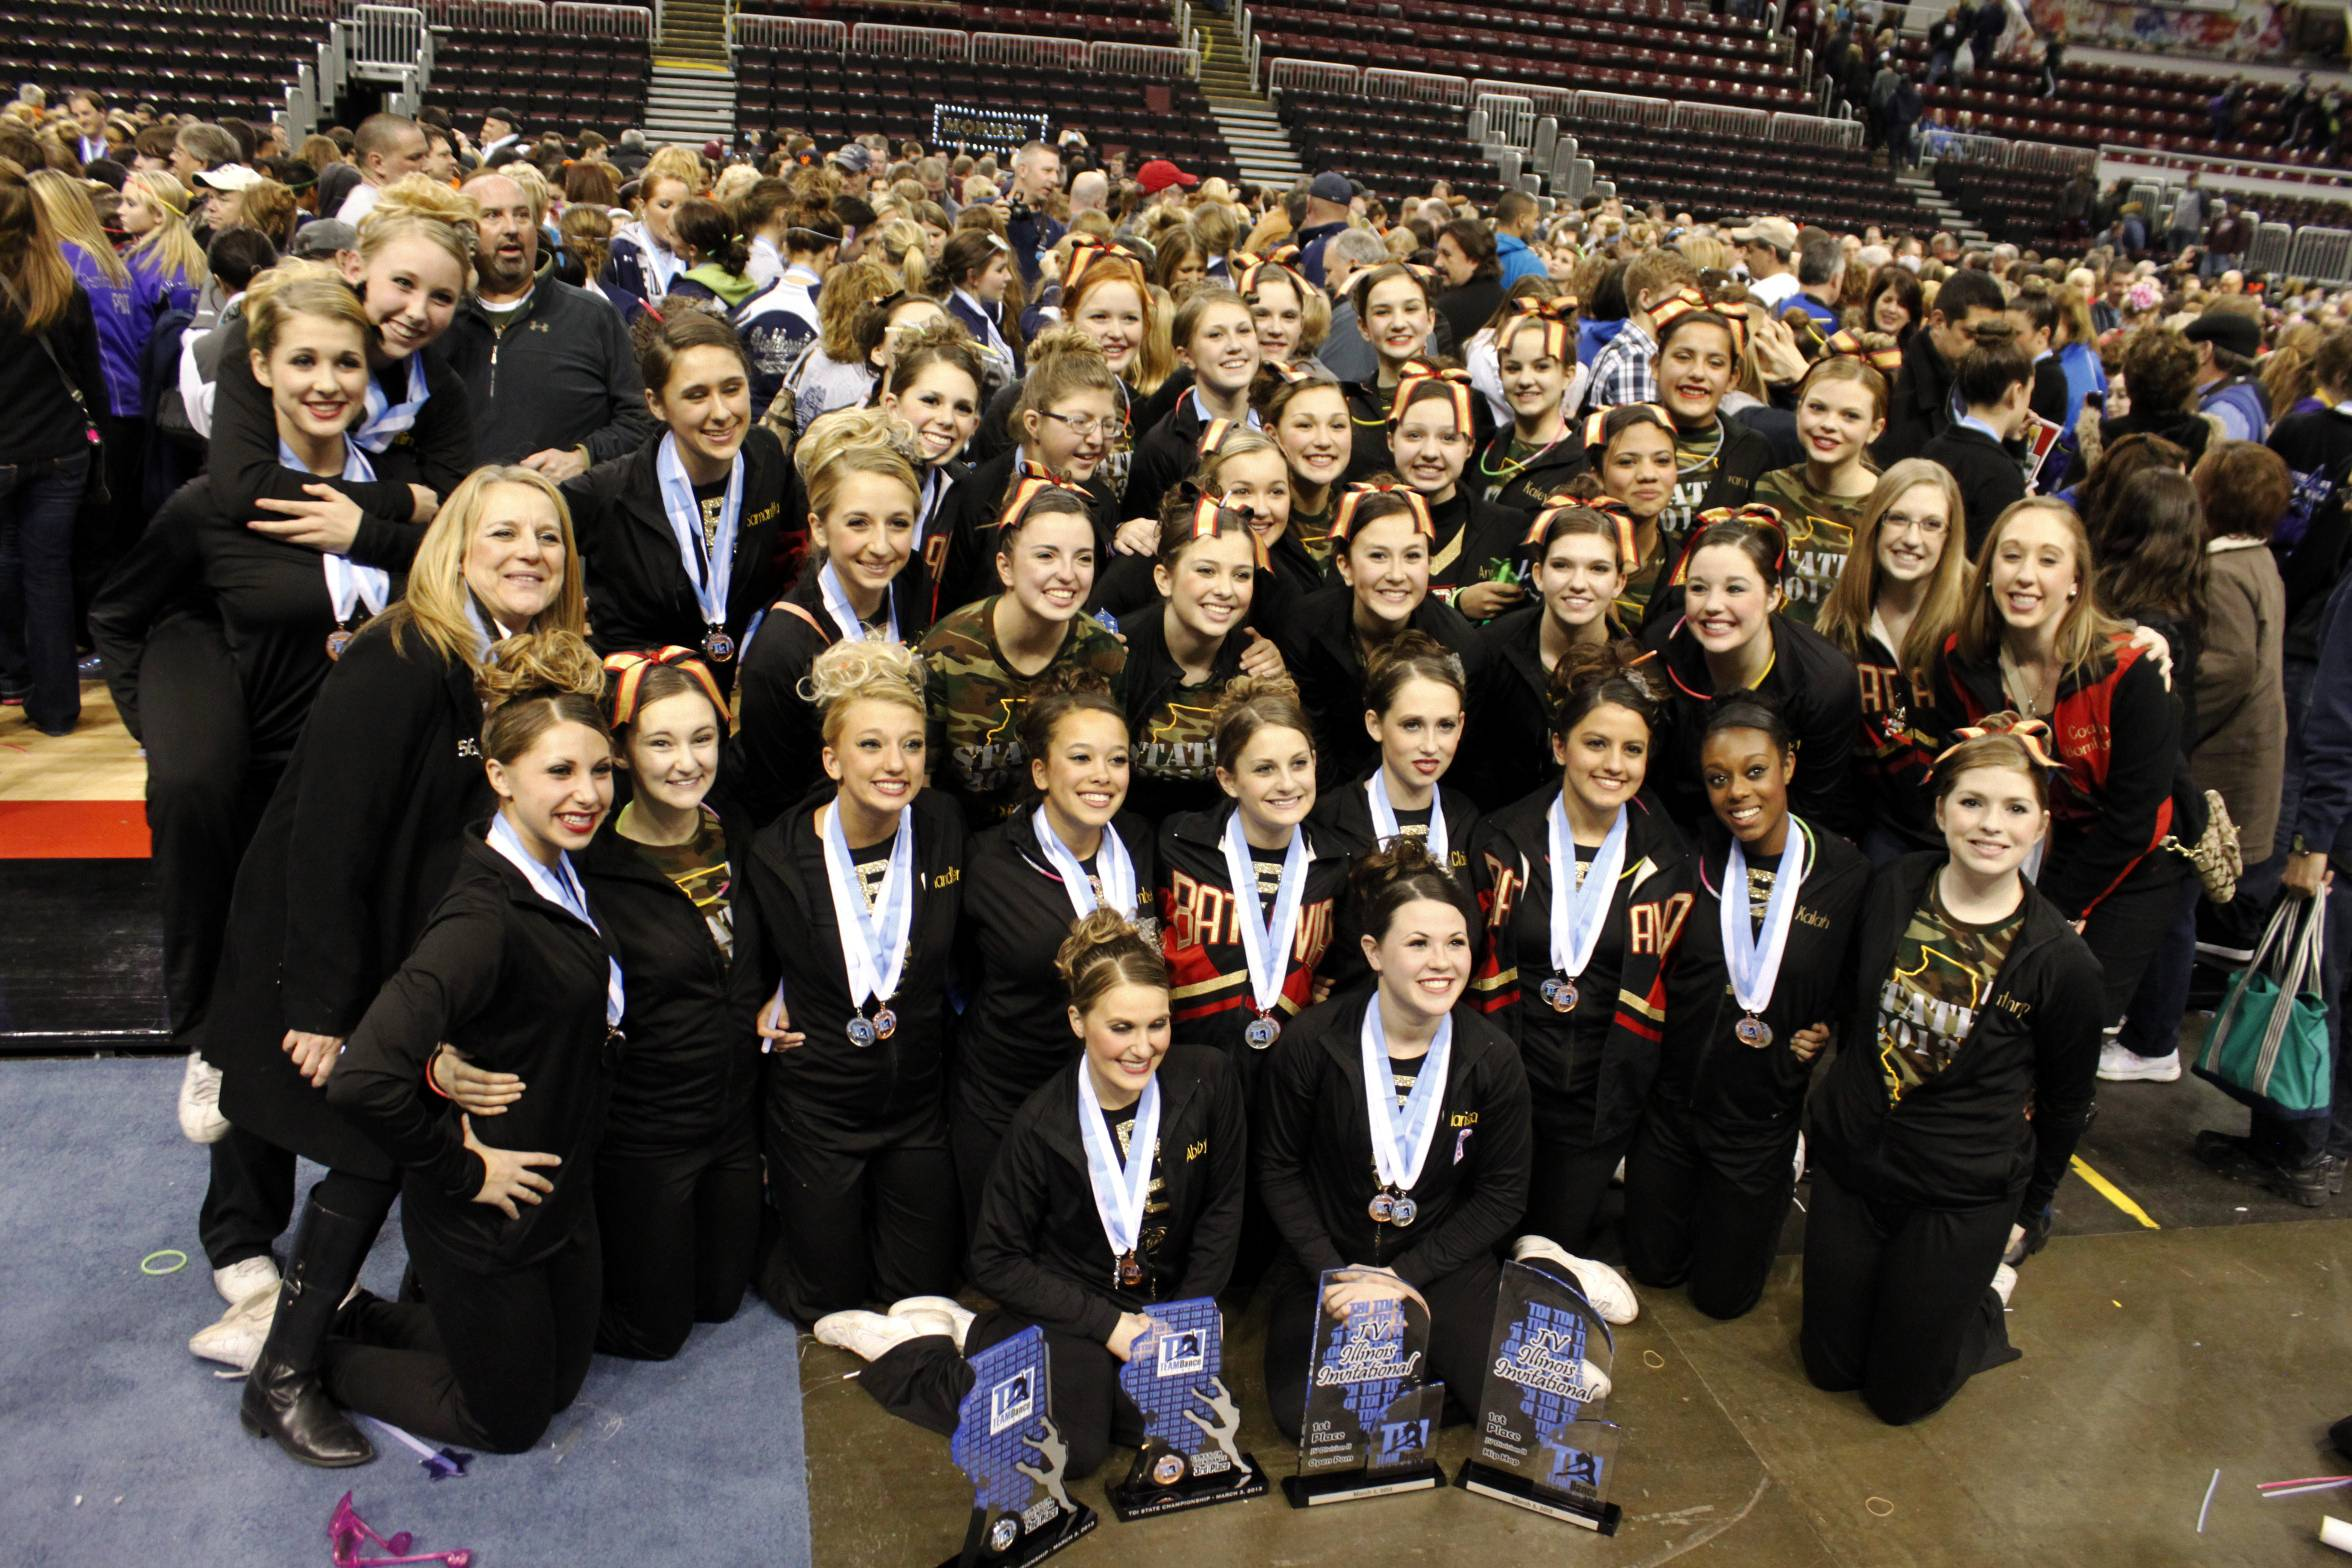 Batavia High School JV and Varsity Dance Team proudly display the four trophies they won at State in Peoria on March 3, 2013.